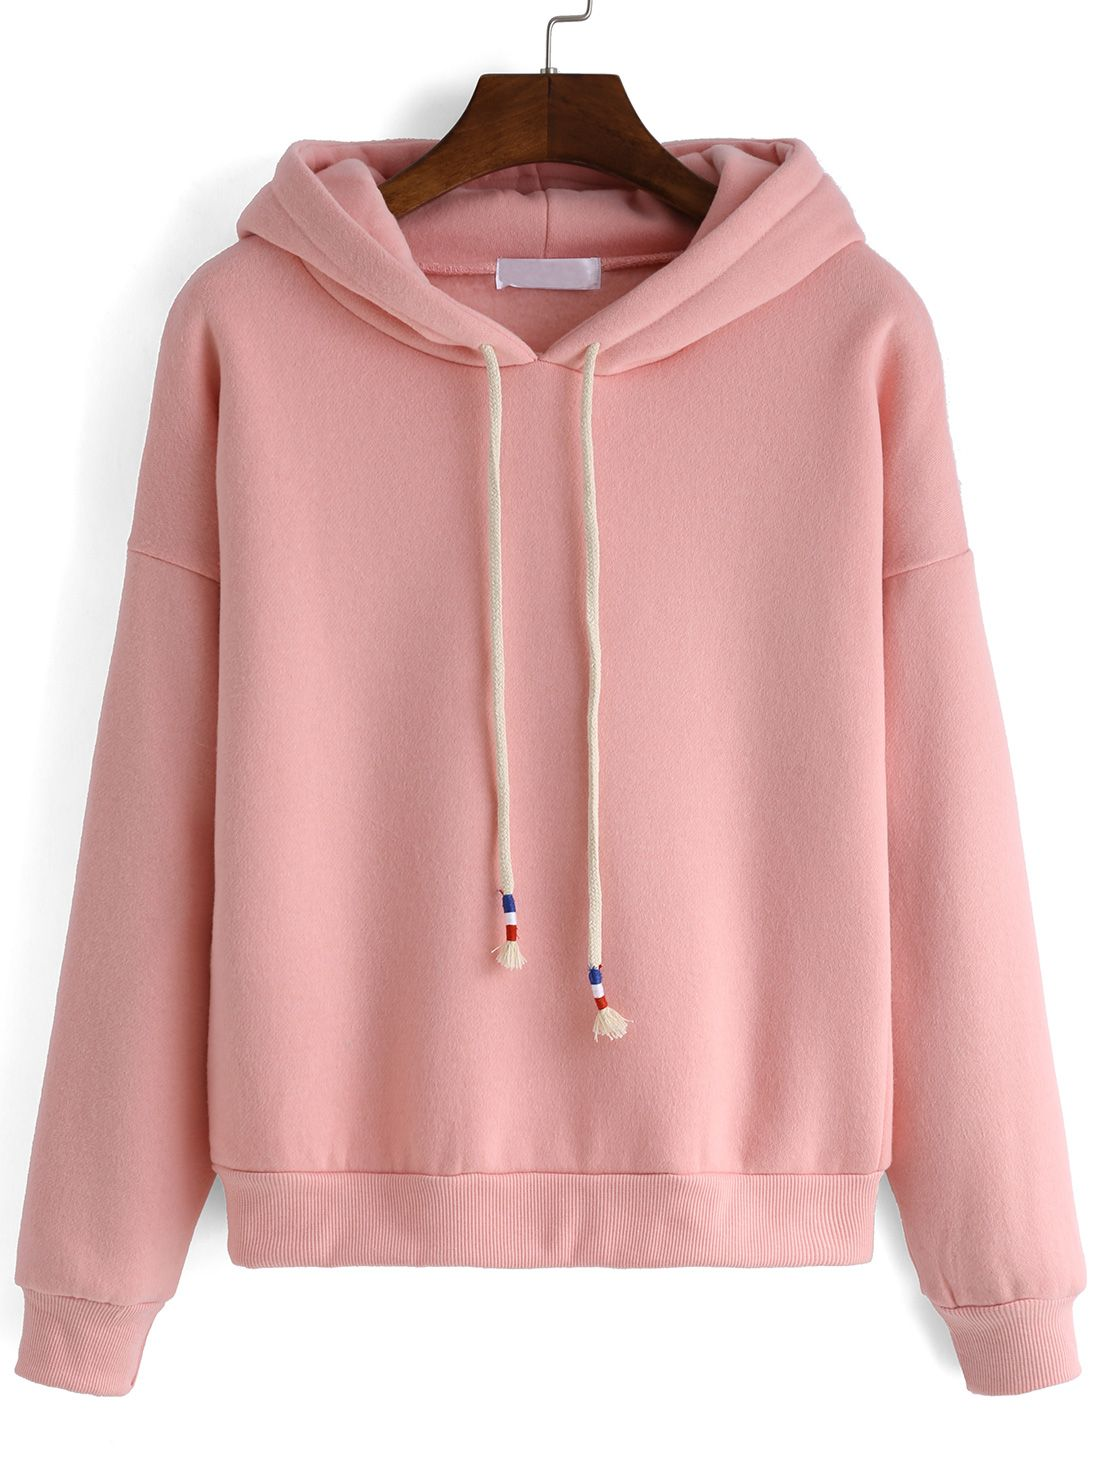 Hooded Drawstring Loose Pink Sweatshirt 13.00 | Closet wish ...